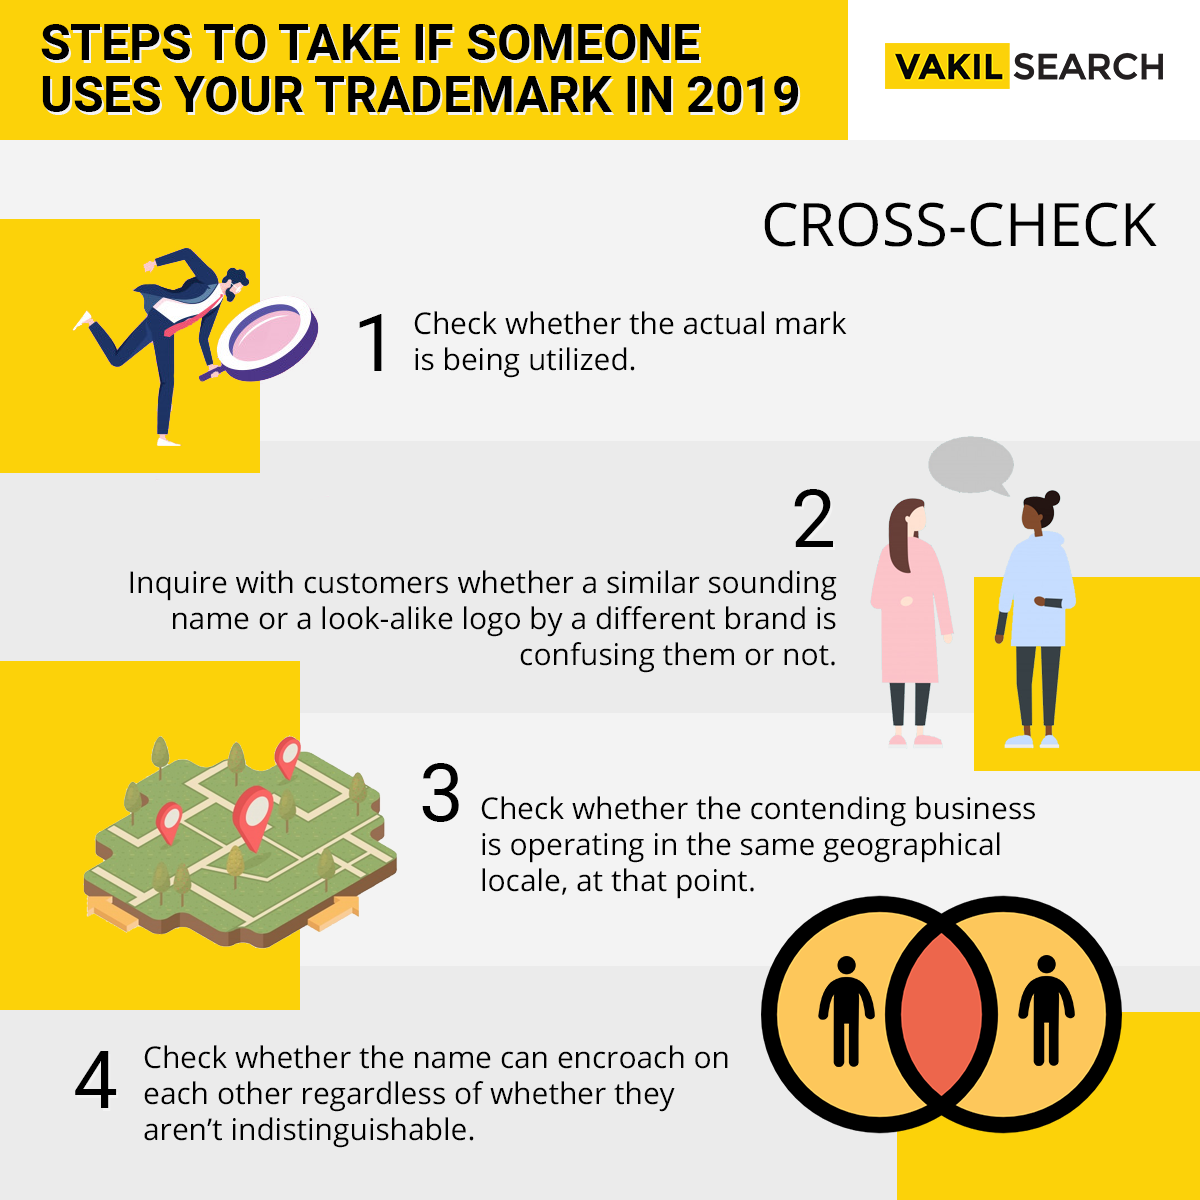 Steps to Take if Someone Uses Your Trademark - Vakilsearch com